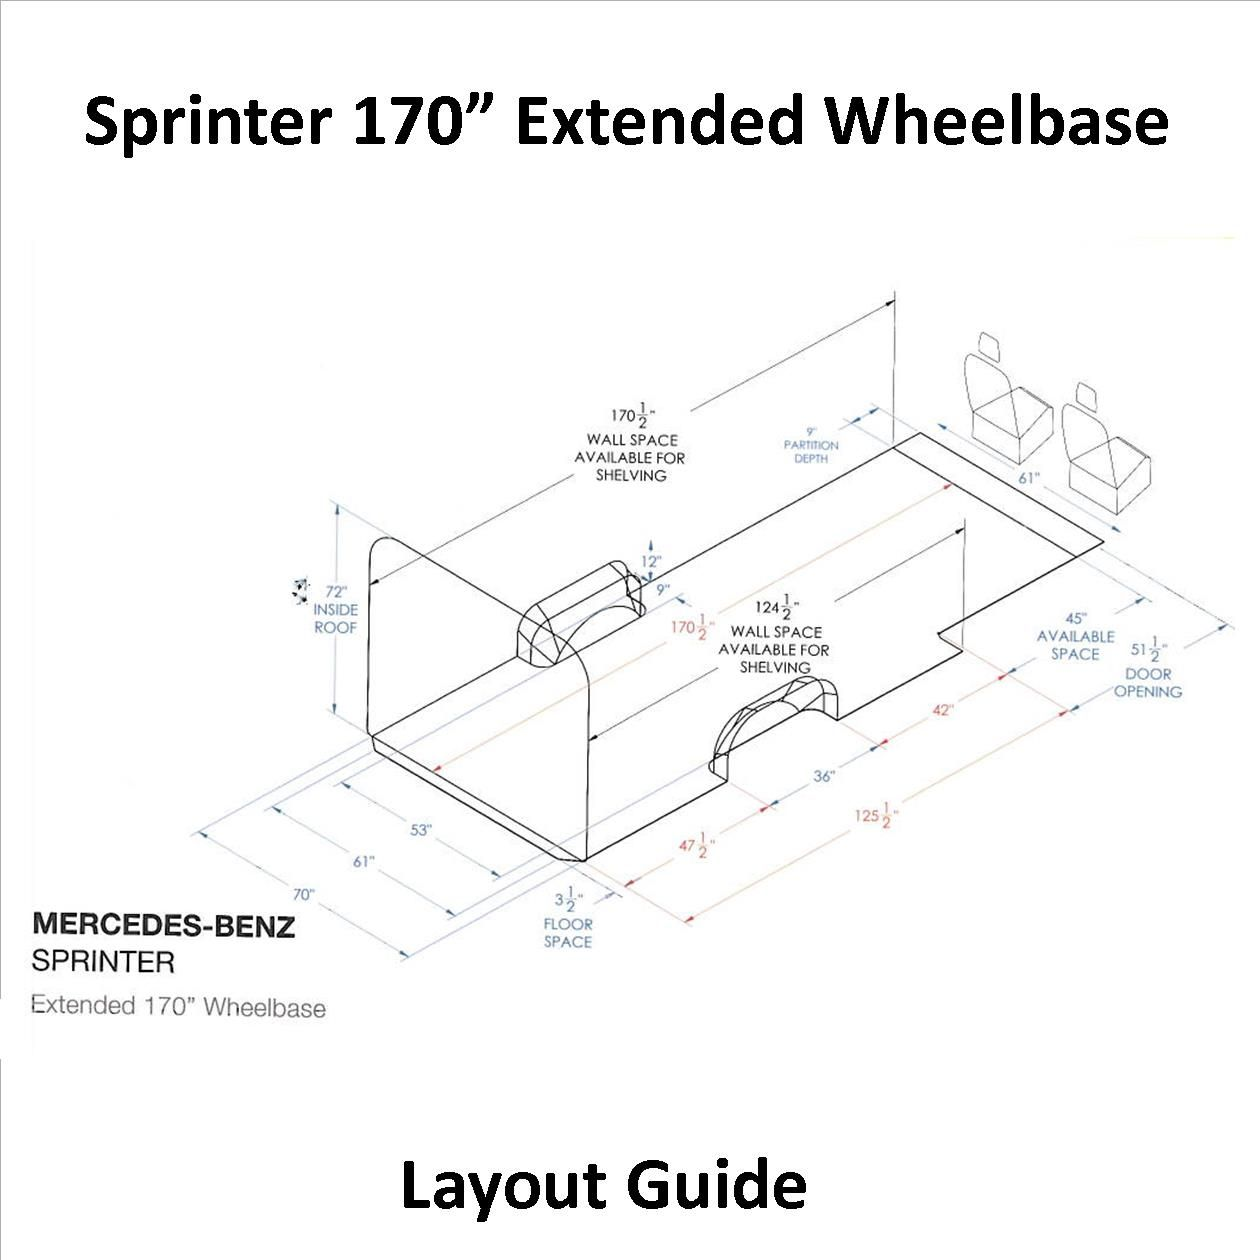 small resolution of sprinter layout guide 170 extended wb inlad truck van company